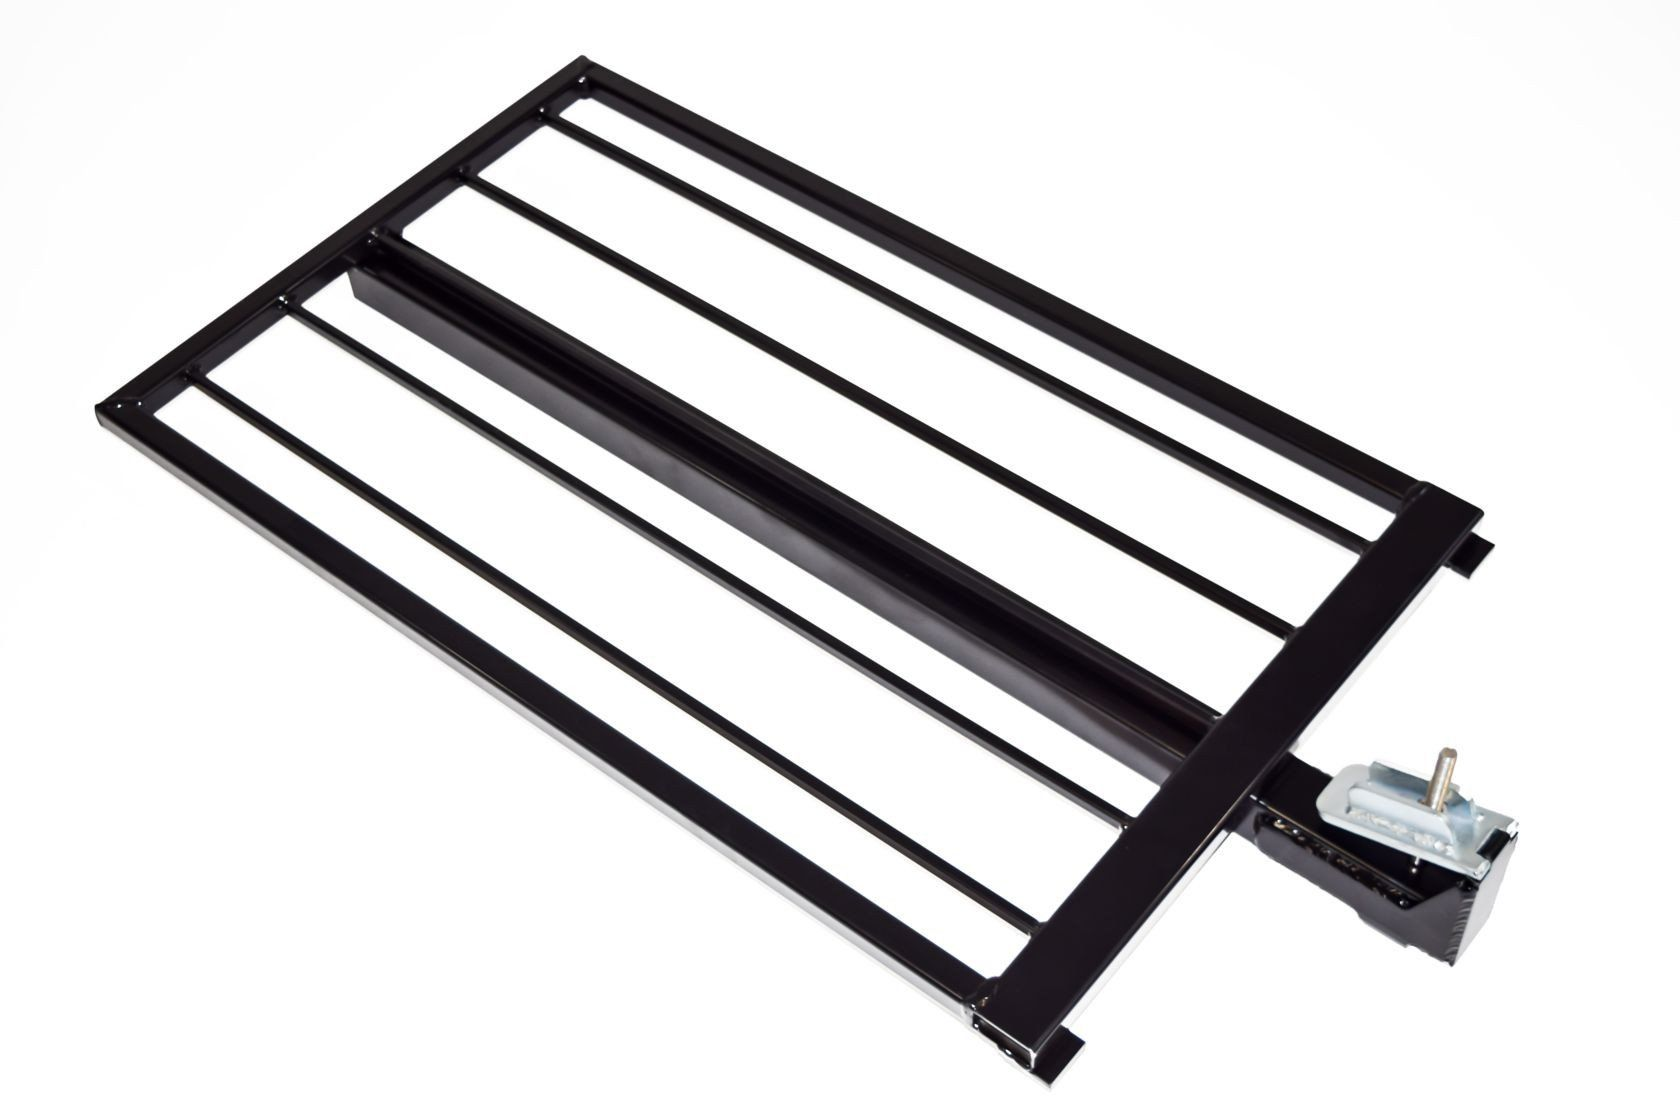 Aluminum Guardrail Frame (Code compliant for public use) Black Finish 2'x36